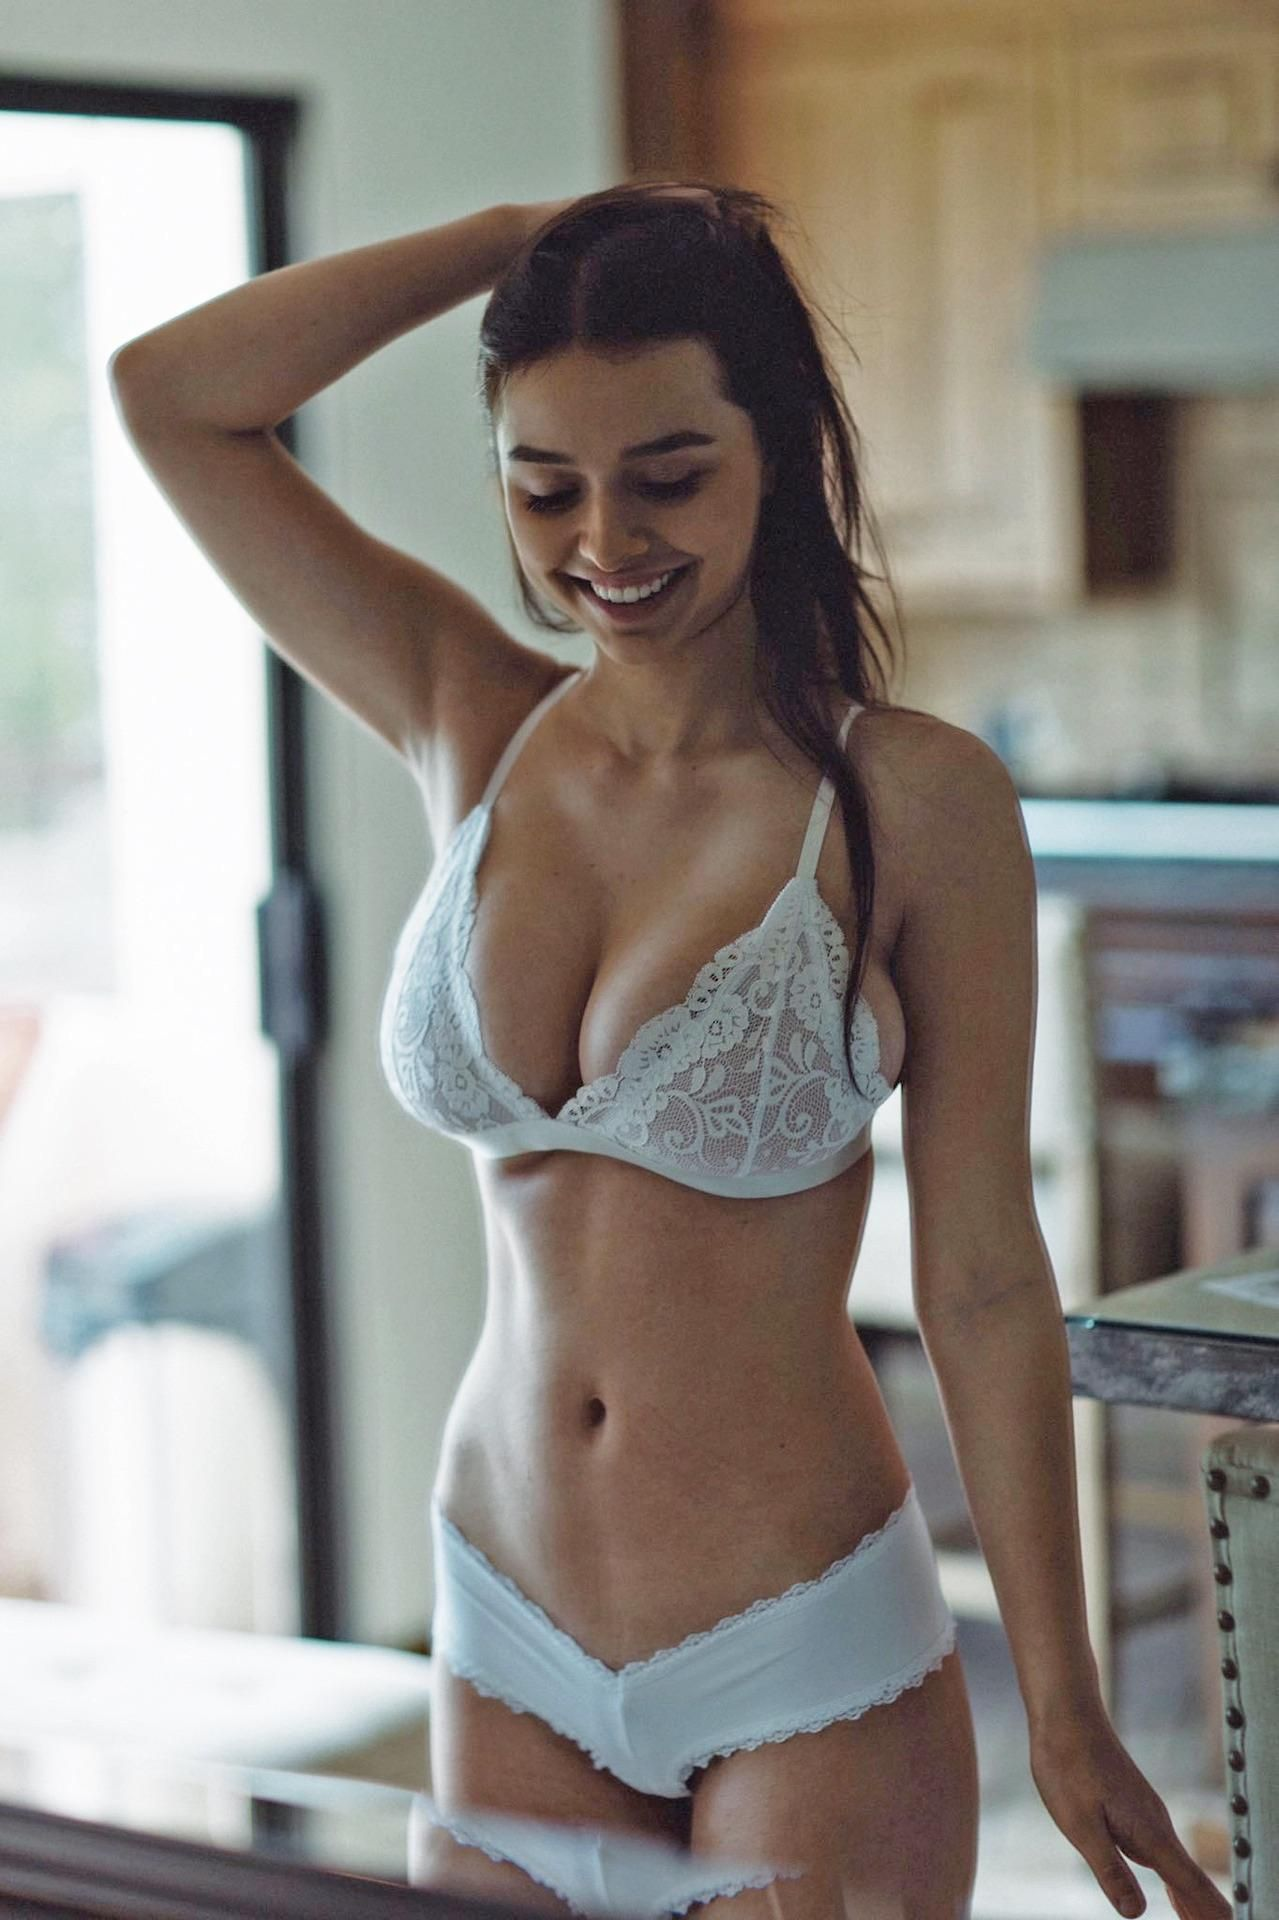 Sophie mudd see through naked (67 photos), Selfie Celebrity pictures